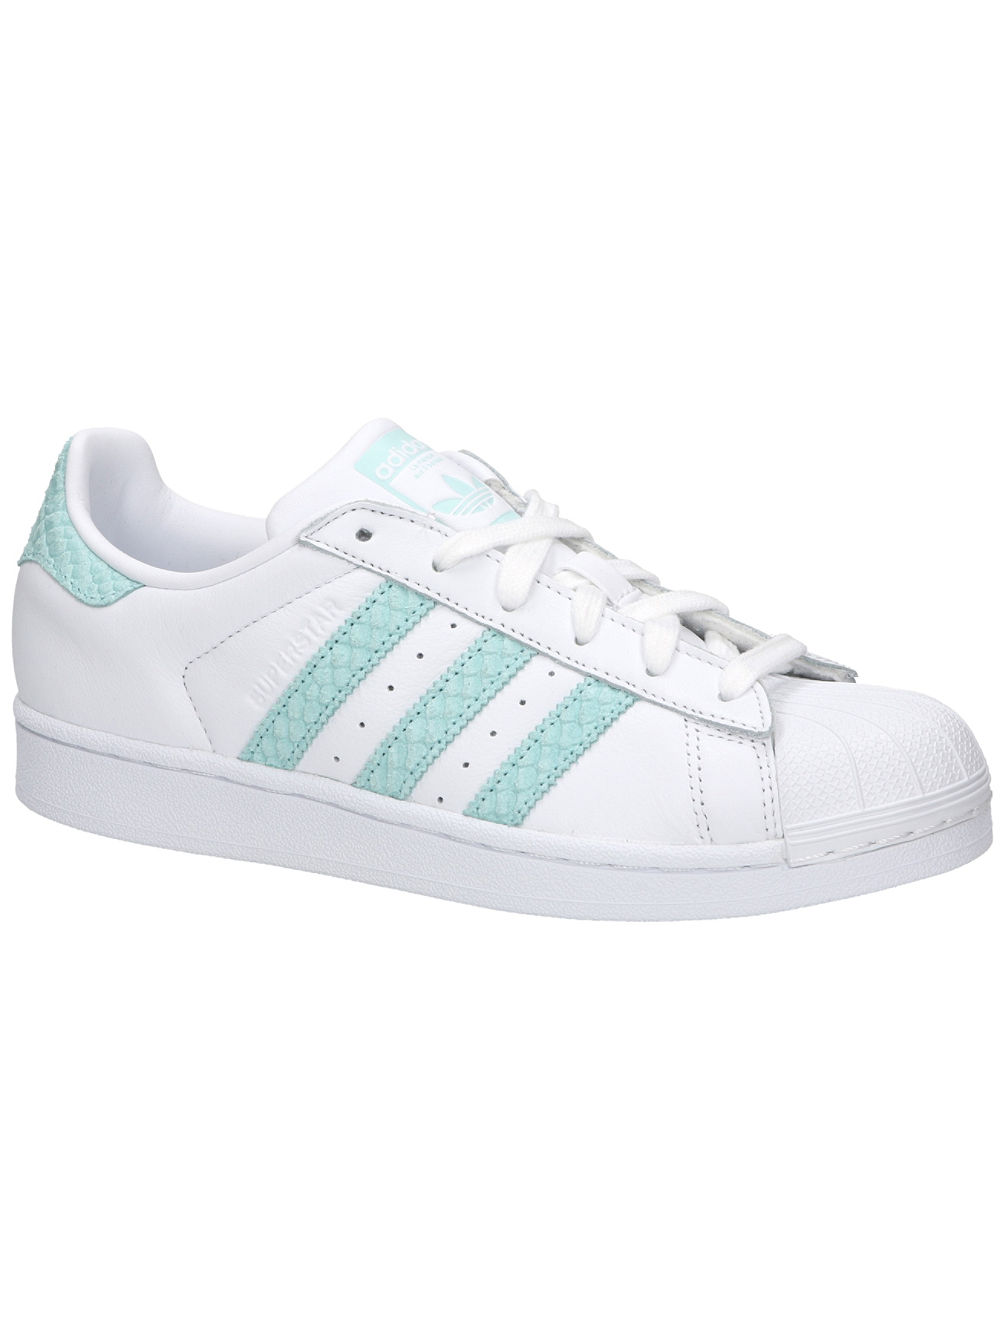 promo code 2ac9a 2a0b3 Superstar Sneakers